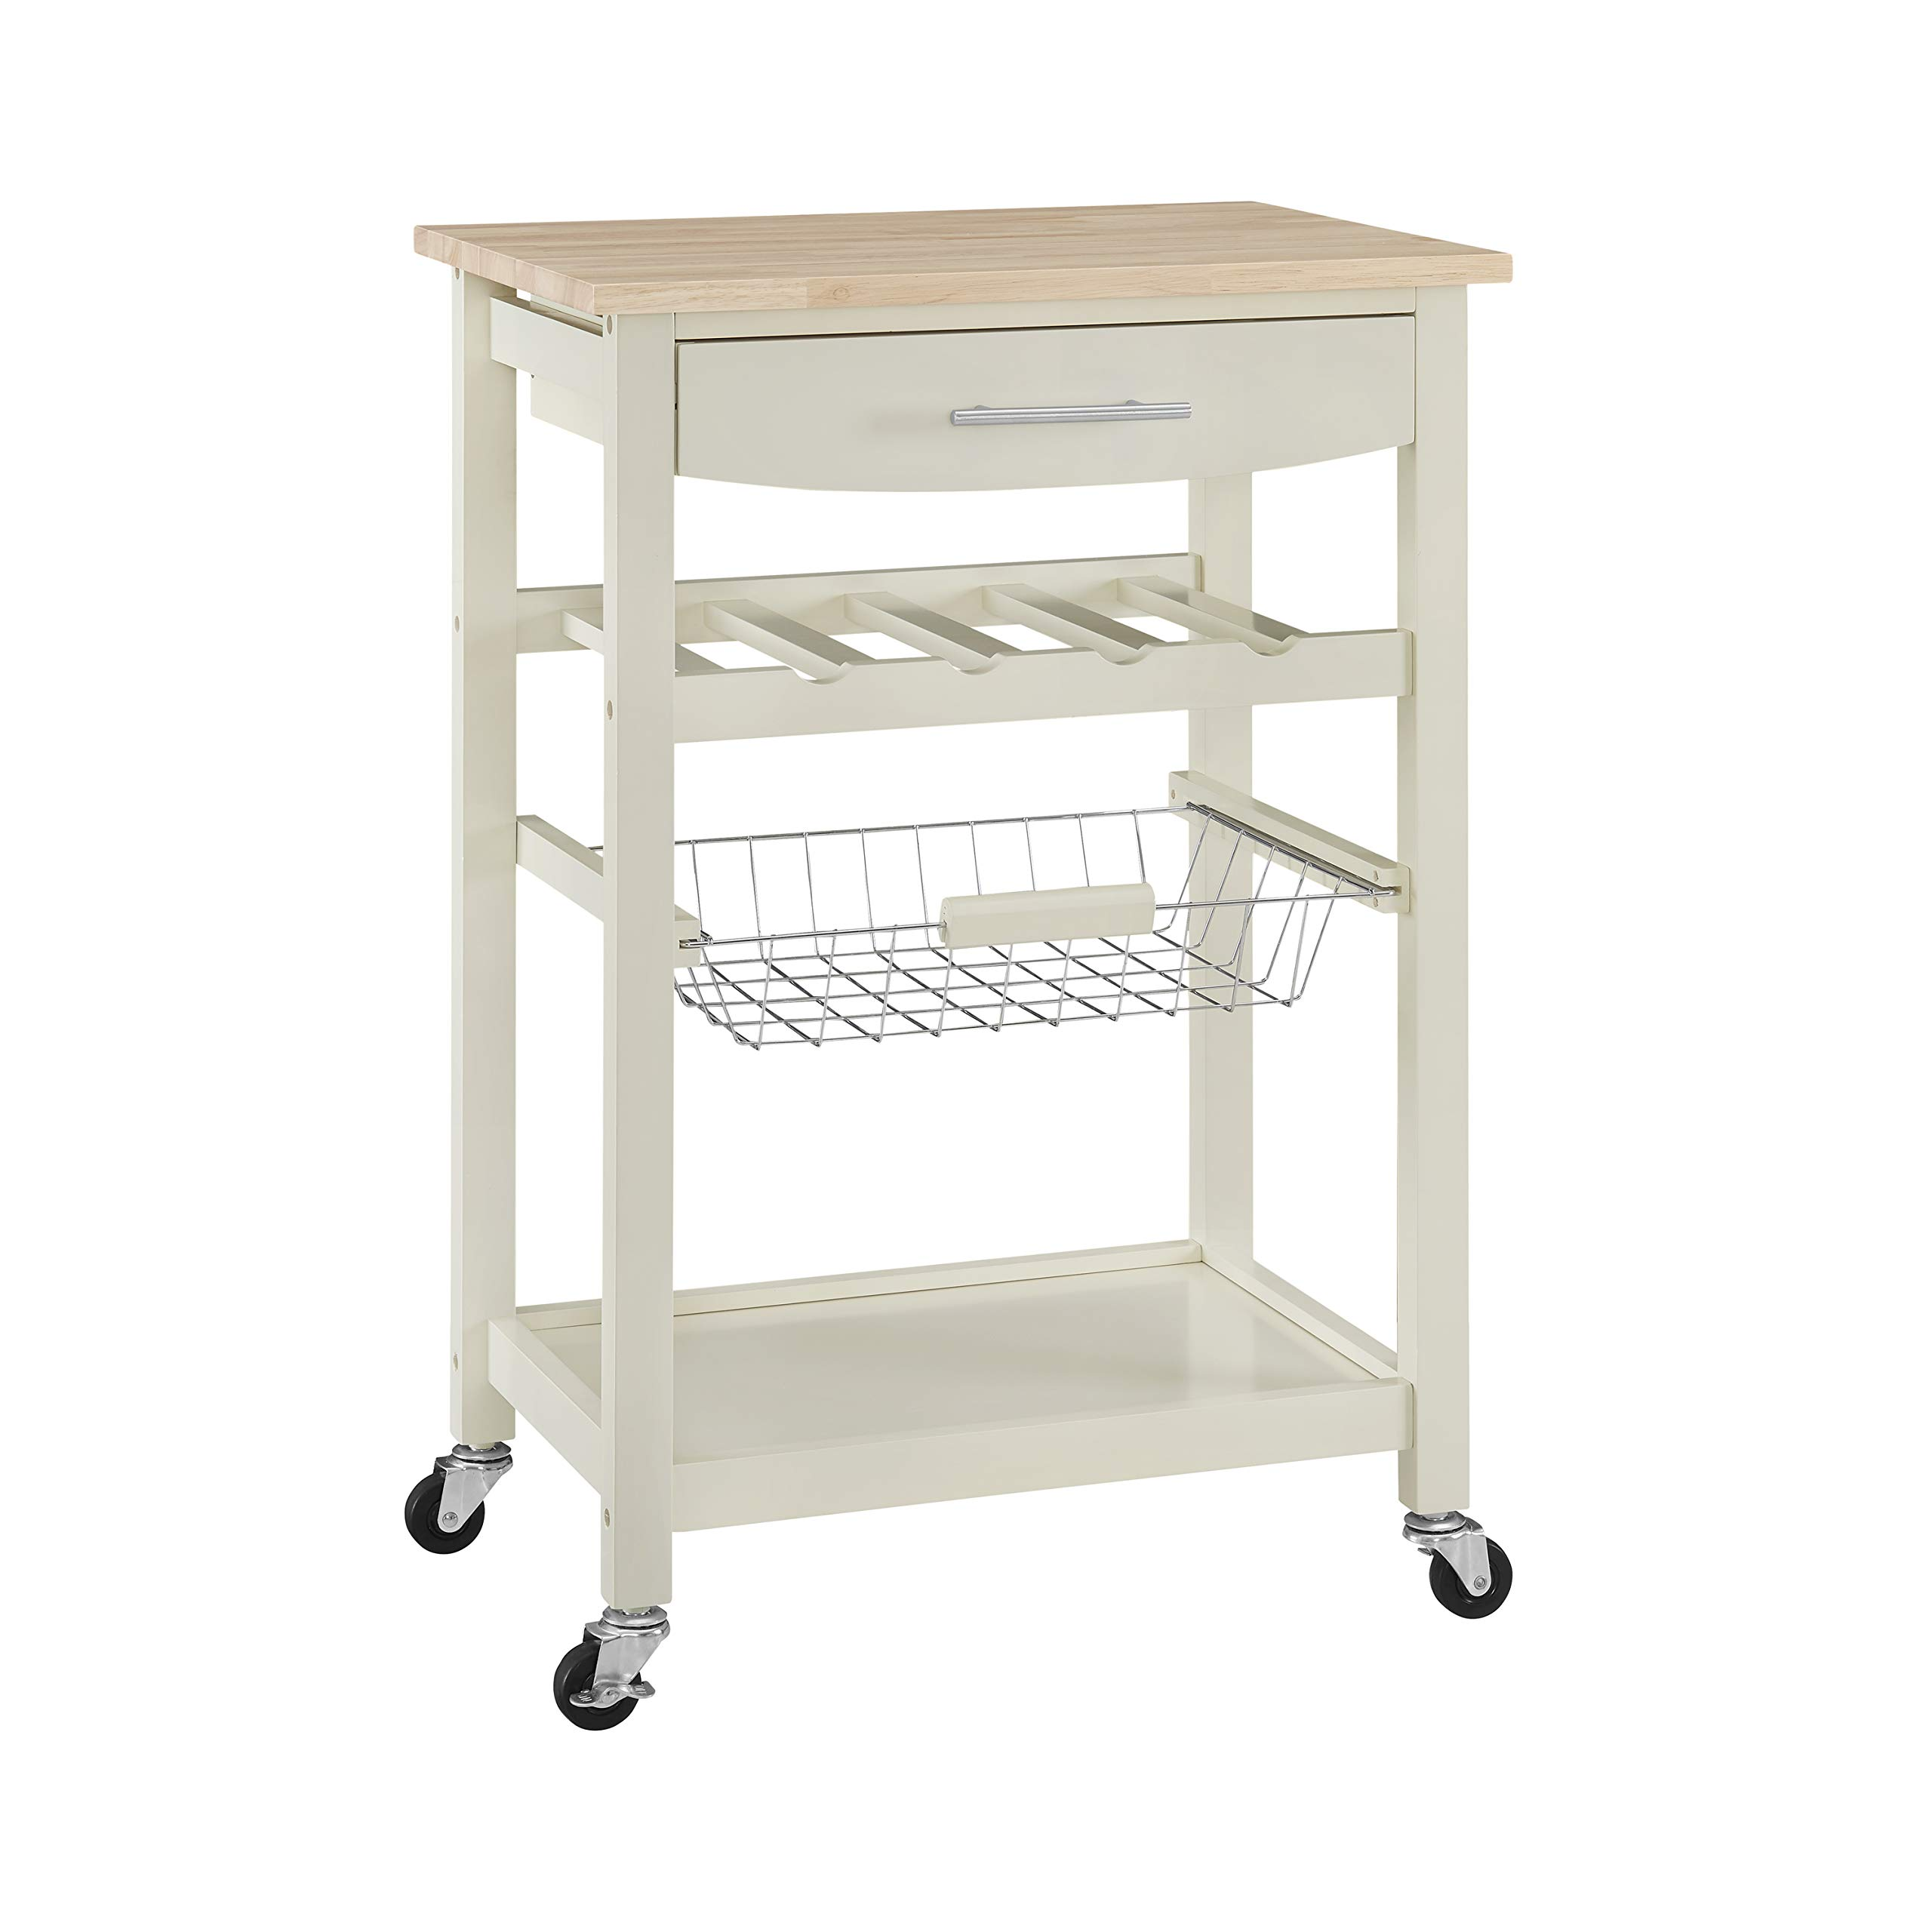 Linon Home Decor Products Pascal Kitchen Cart, Bone White with Wood Top